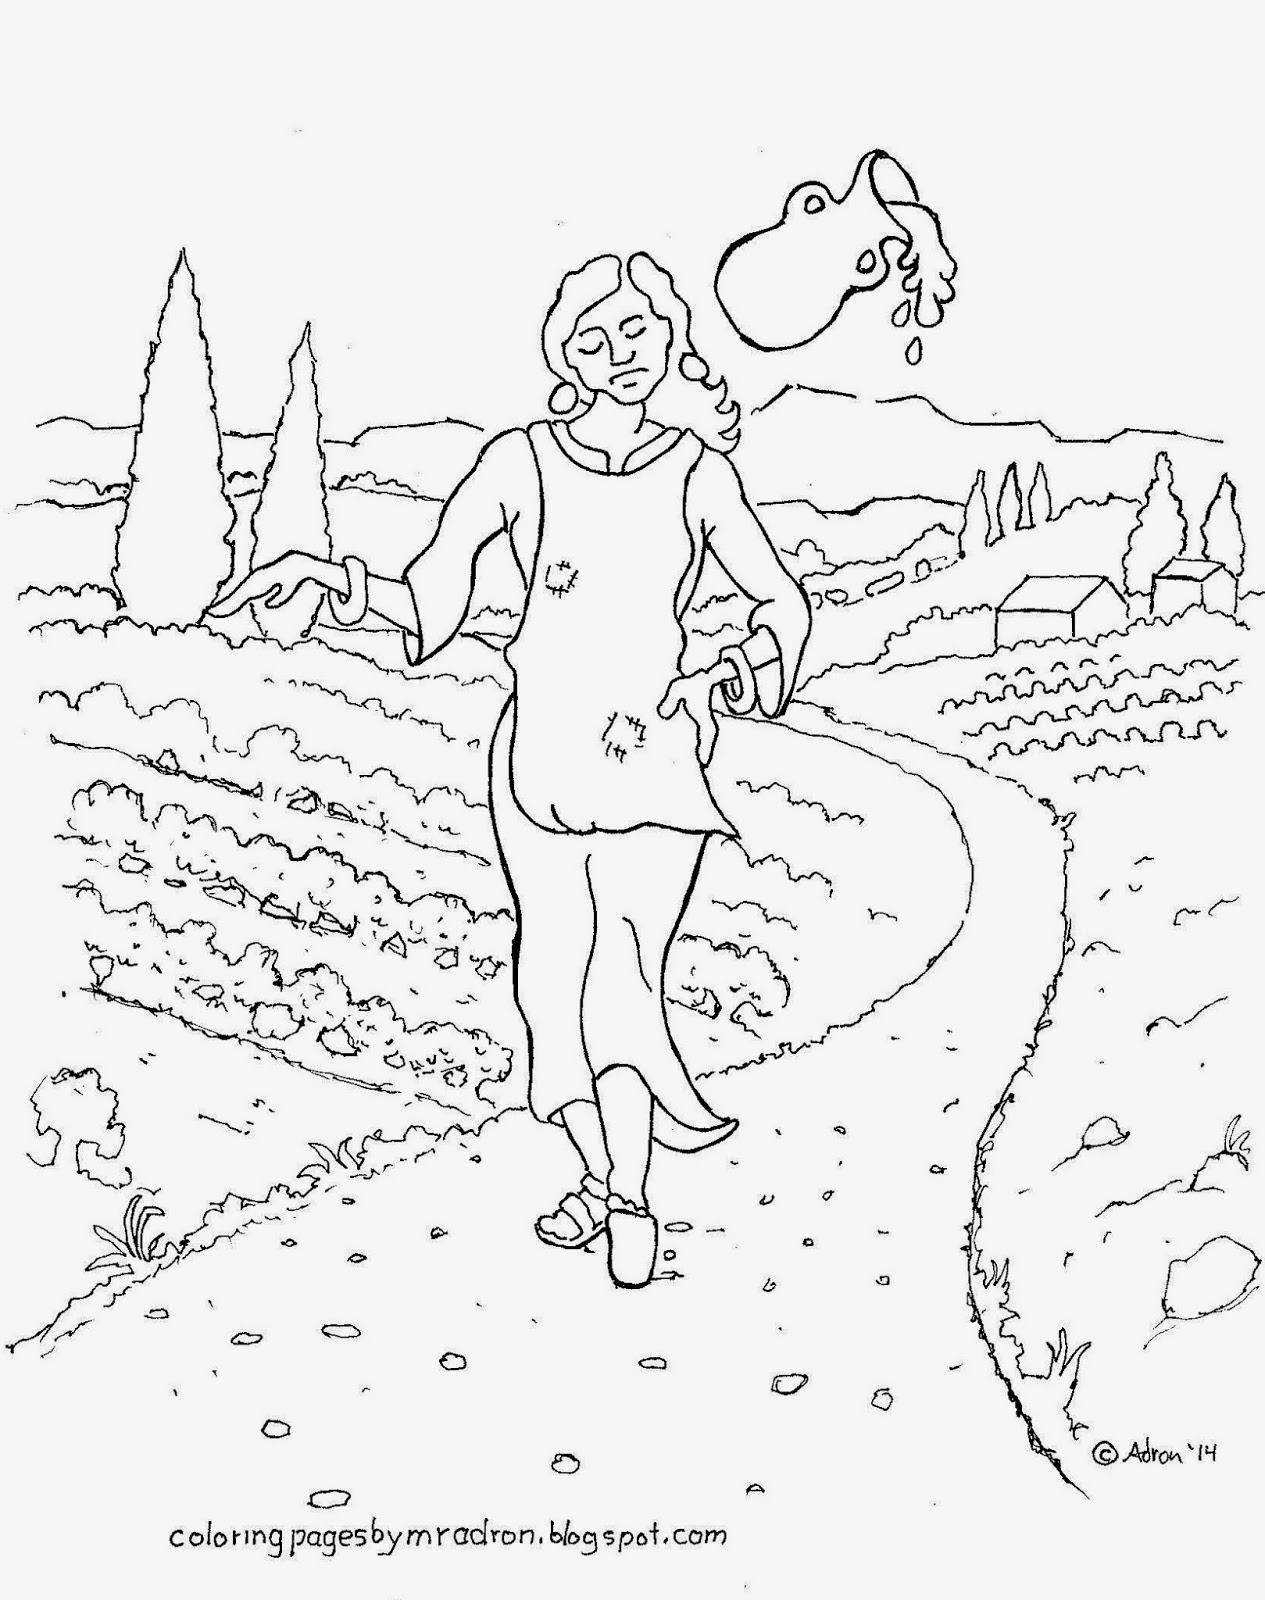 Coloring Pages For Kids By Mr Adron Aesop S Fable